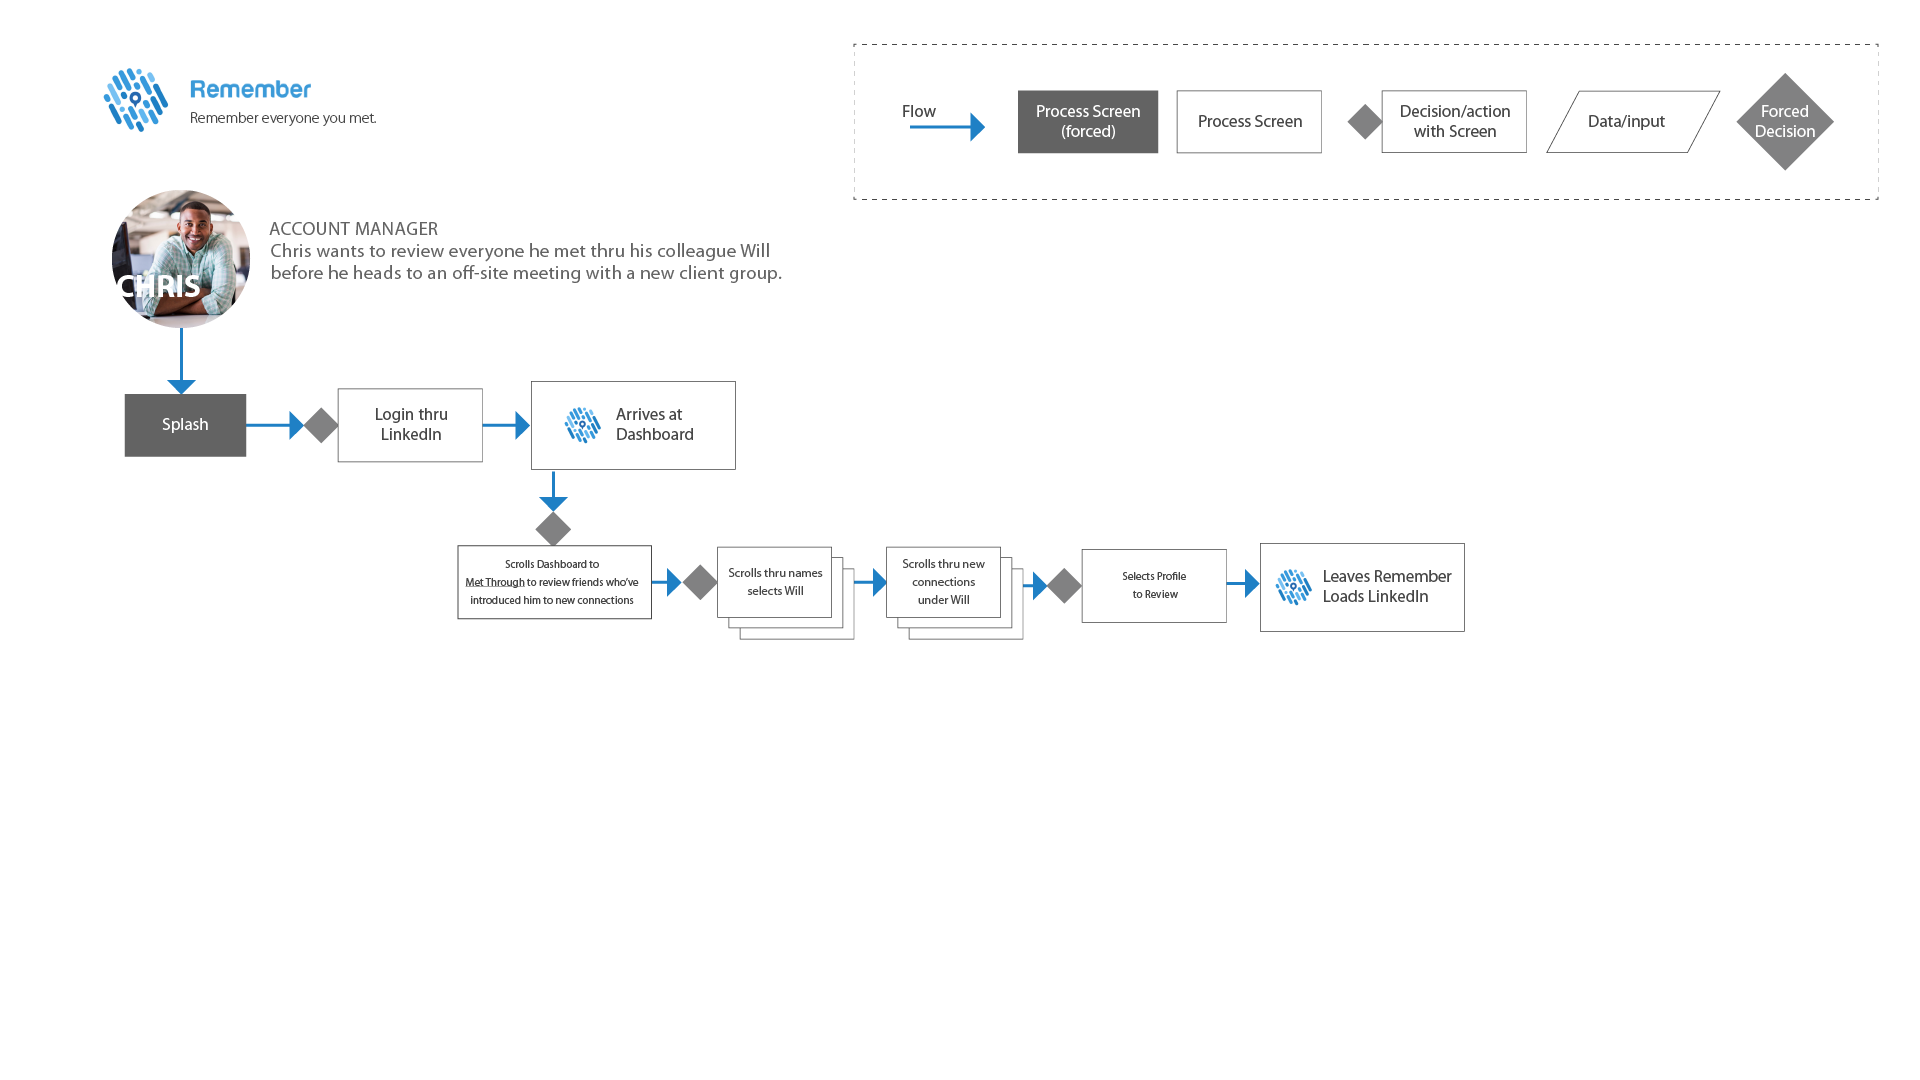 user-flow_User-flow-1 copy 3.png